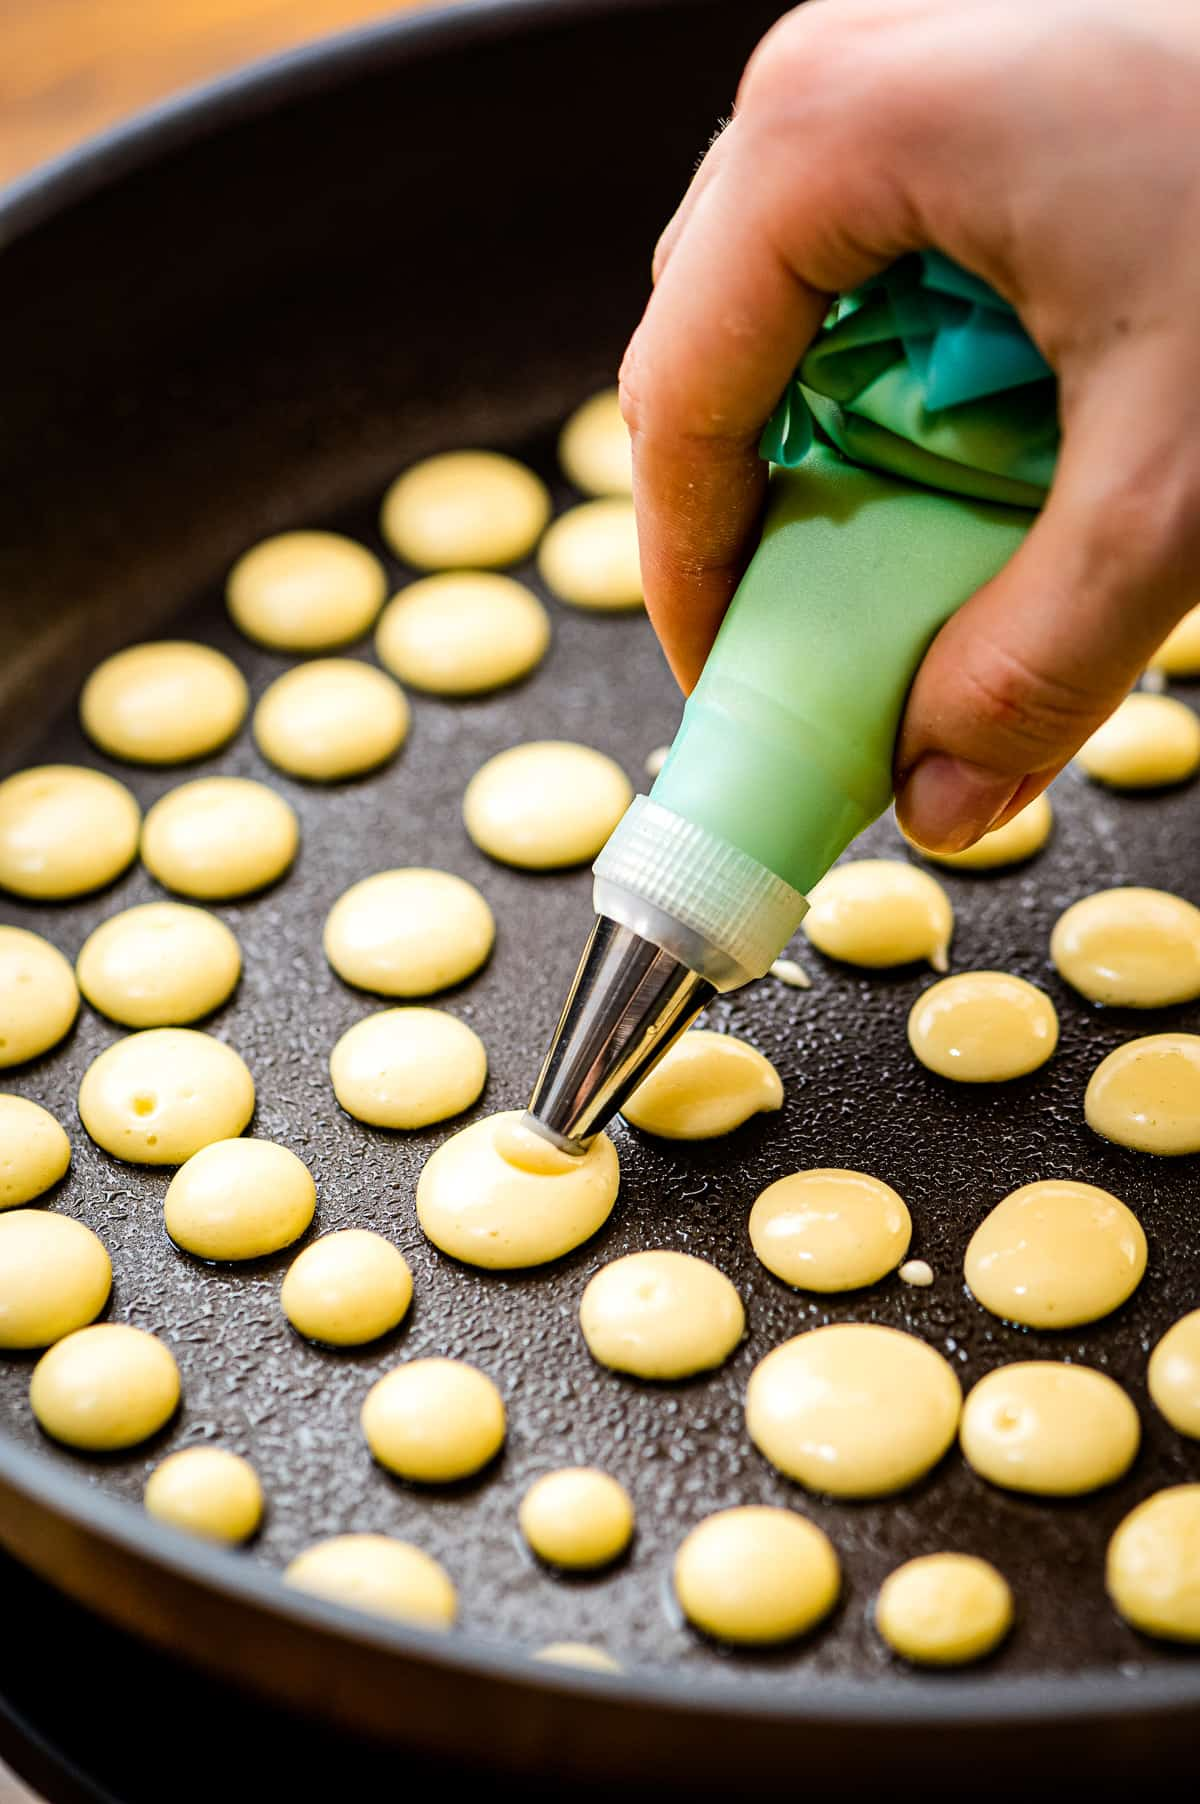 Squeeze mini pancakes into a skillet with piping bag